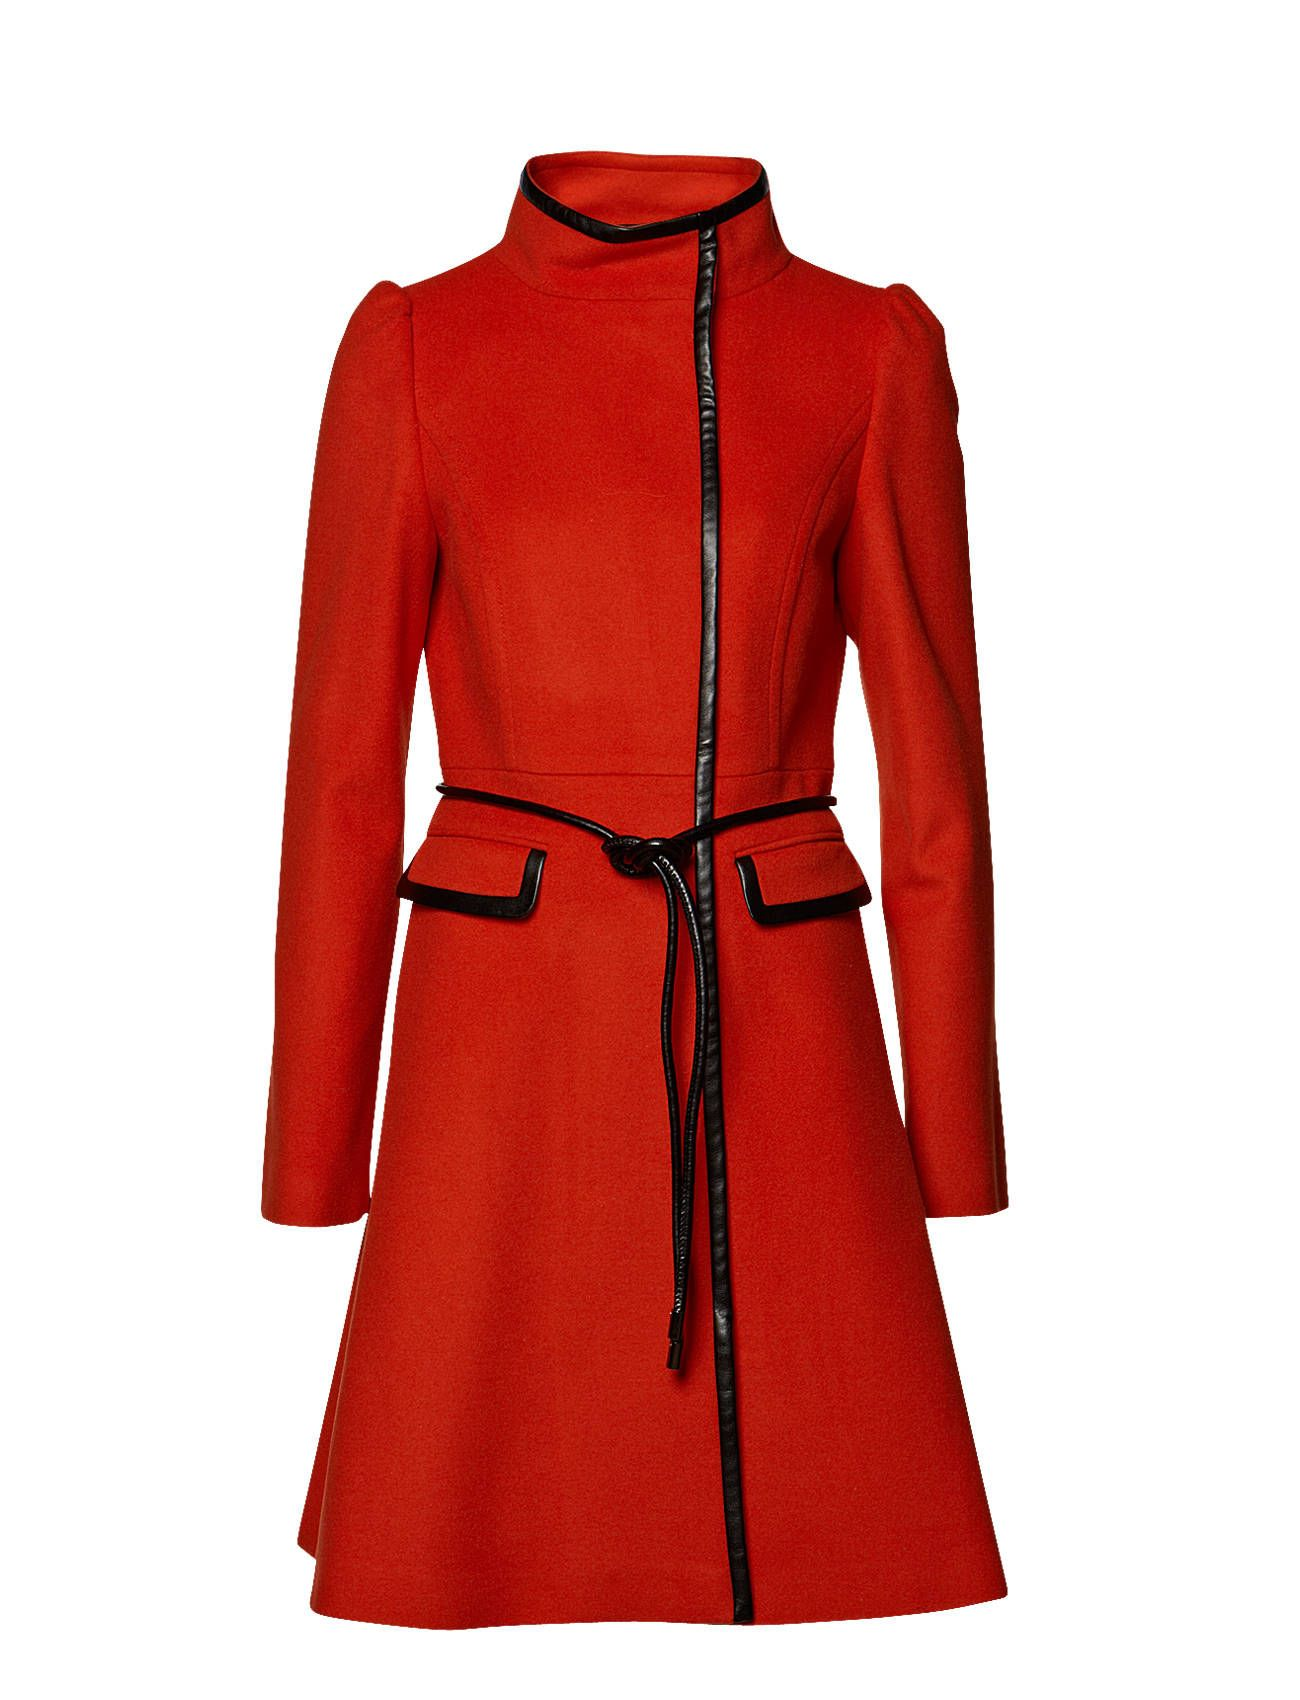 Nice red coat with black leather details will work well with a lot of my dresses.